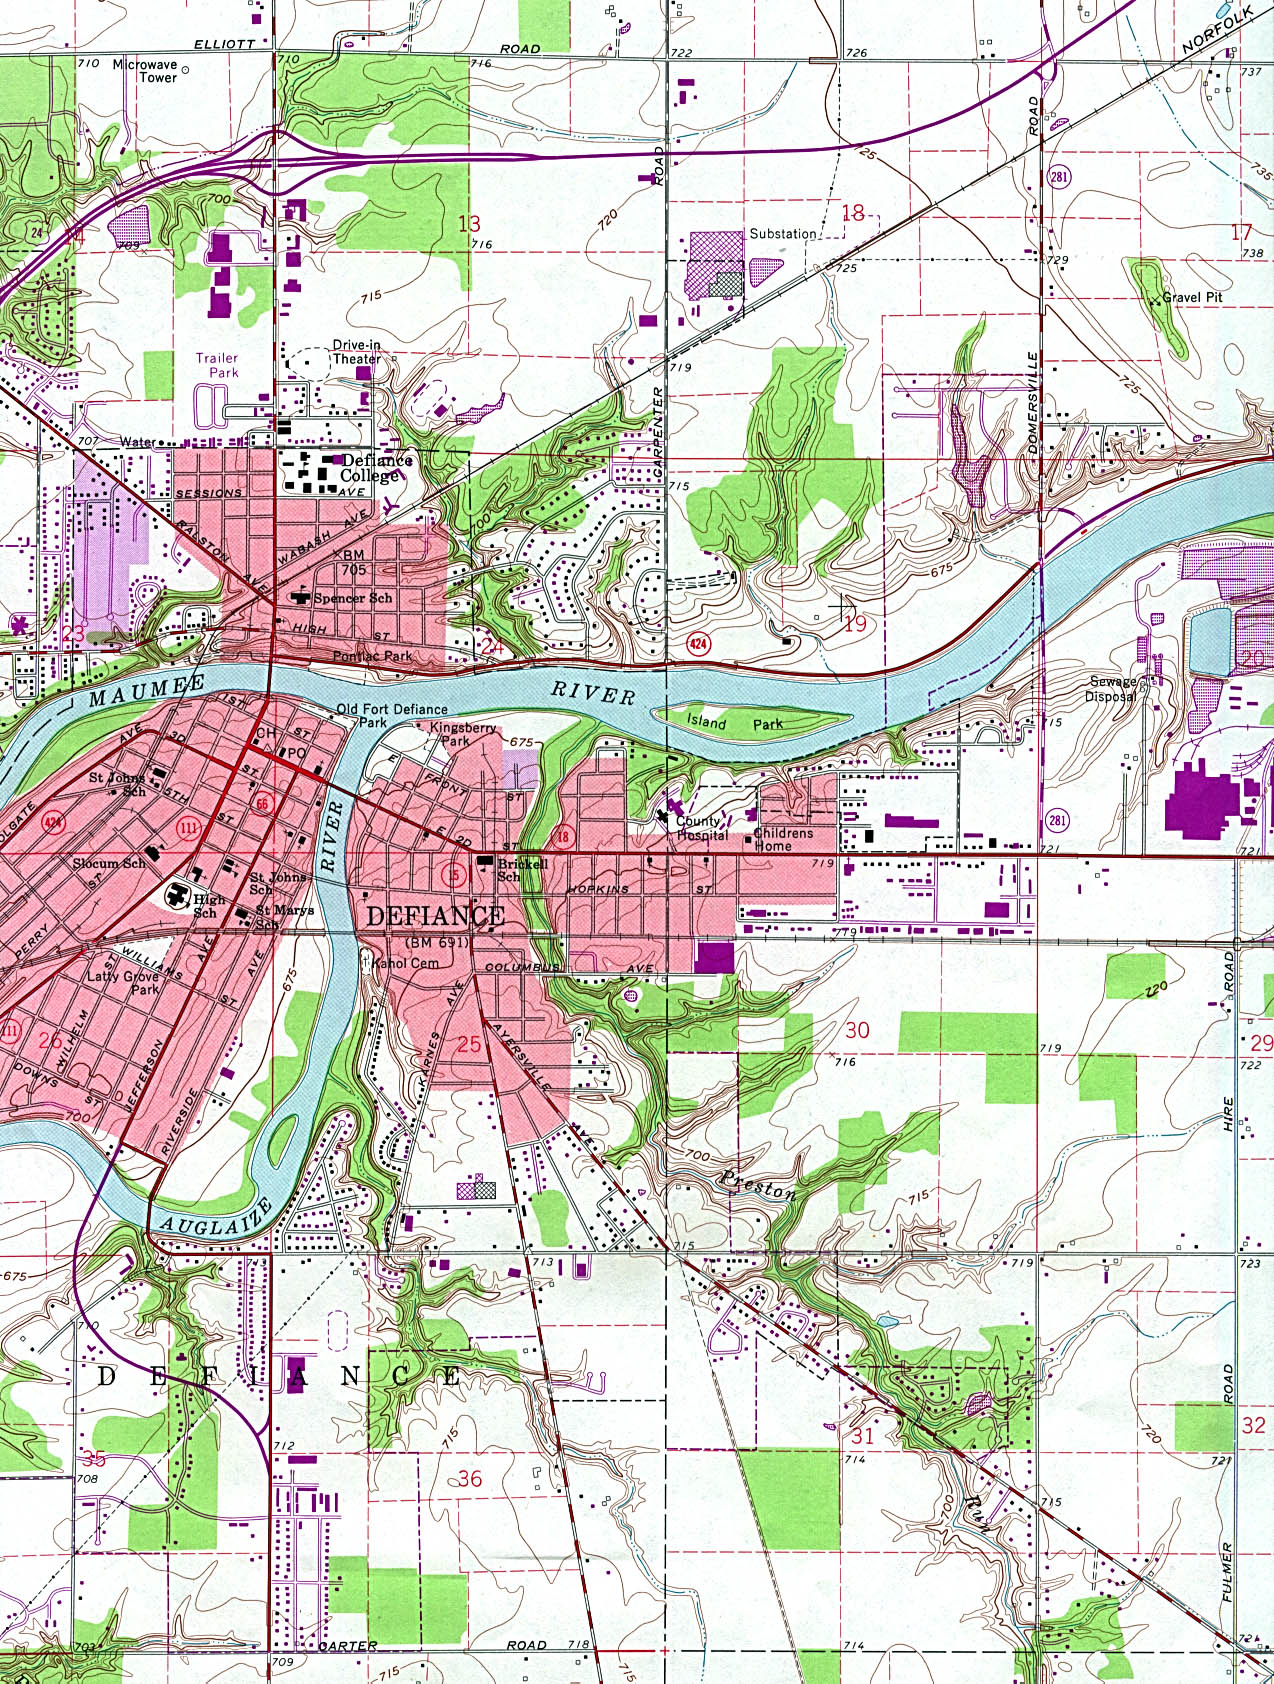 Defiance Topographic City Map, Ohio, United States